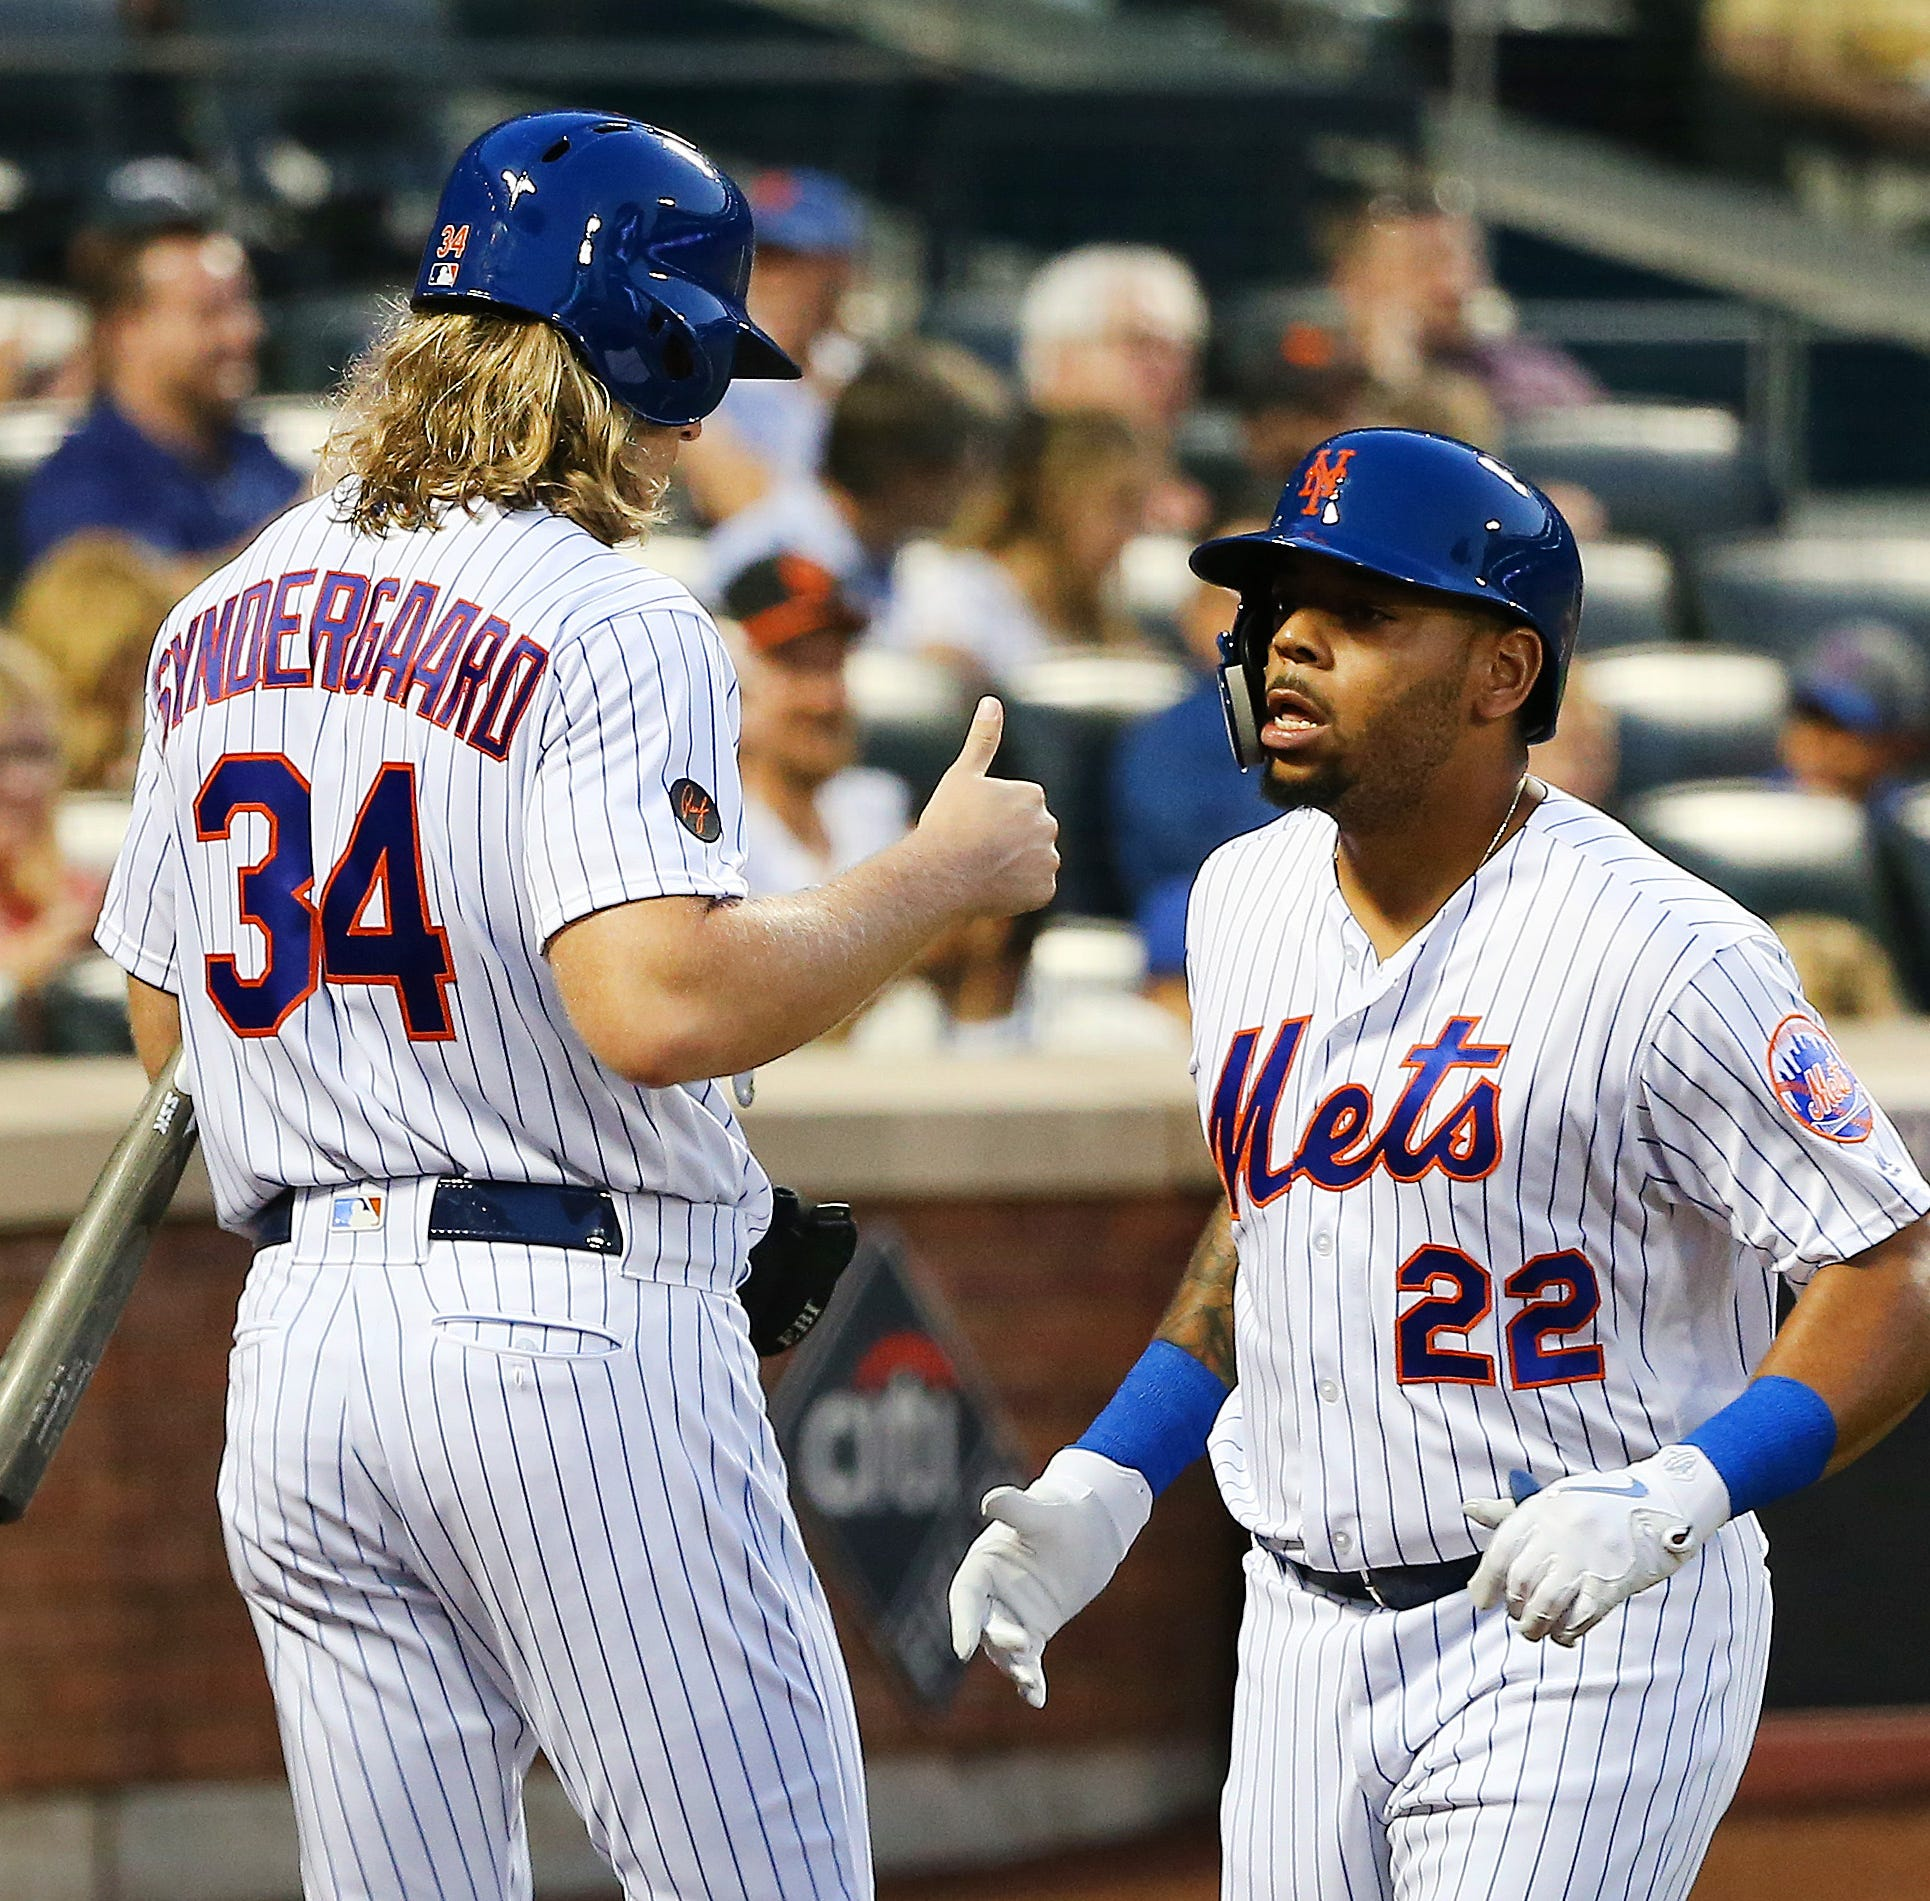 Mets, Phillies lineups as Dominic Smith draws start in LF